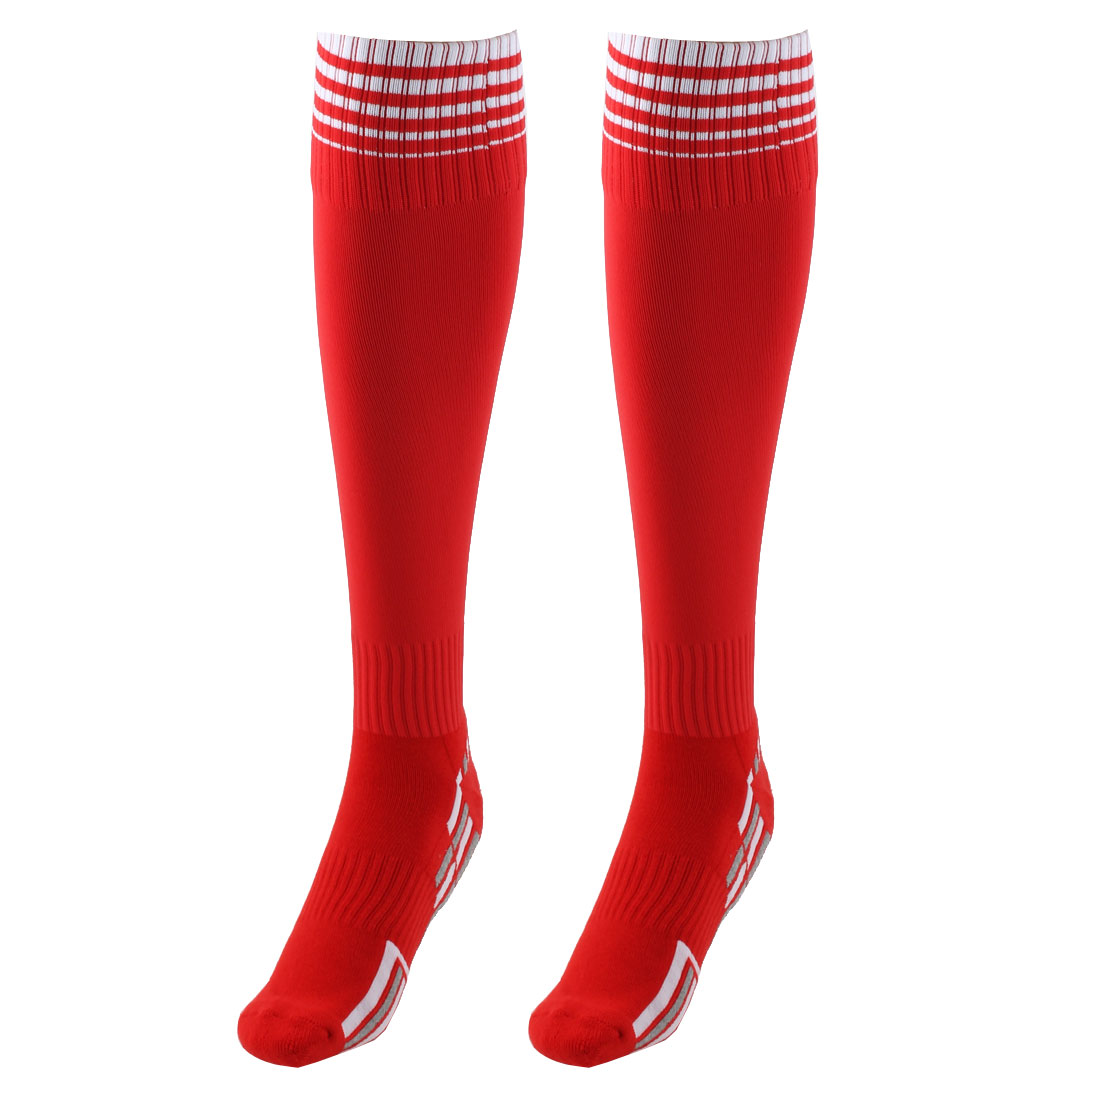 Unisex Nylon Anti Slip Stripe Pattern Elastic Football Soccer Sport Long Socks Red Pair